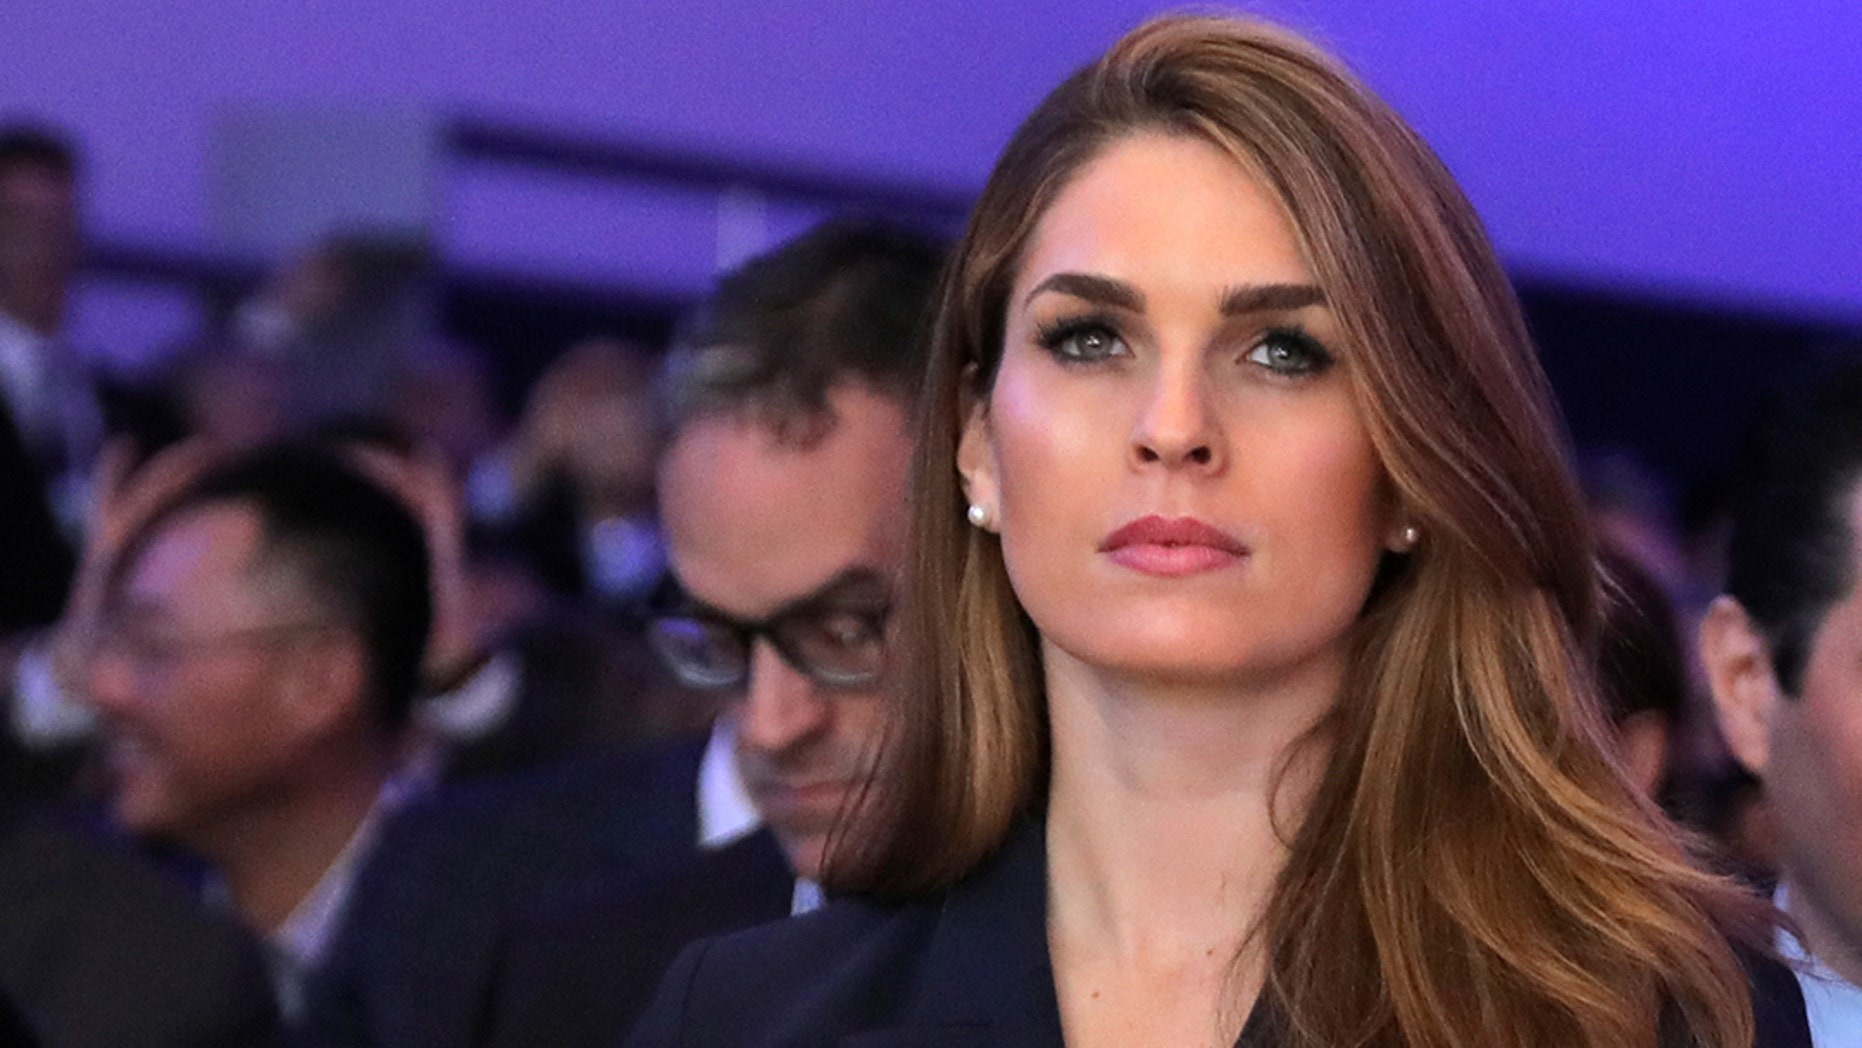 Hope Hicks, 29, had no political background when she joined Trump's 2016 campaign team.